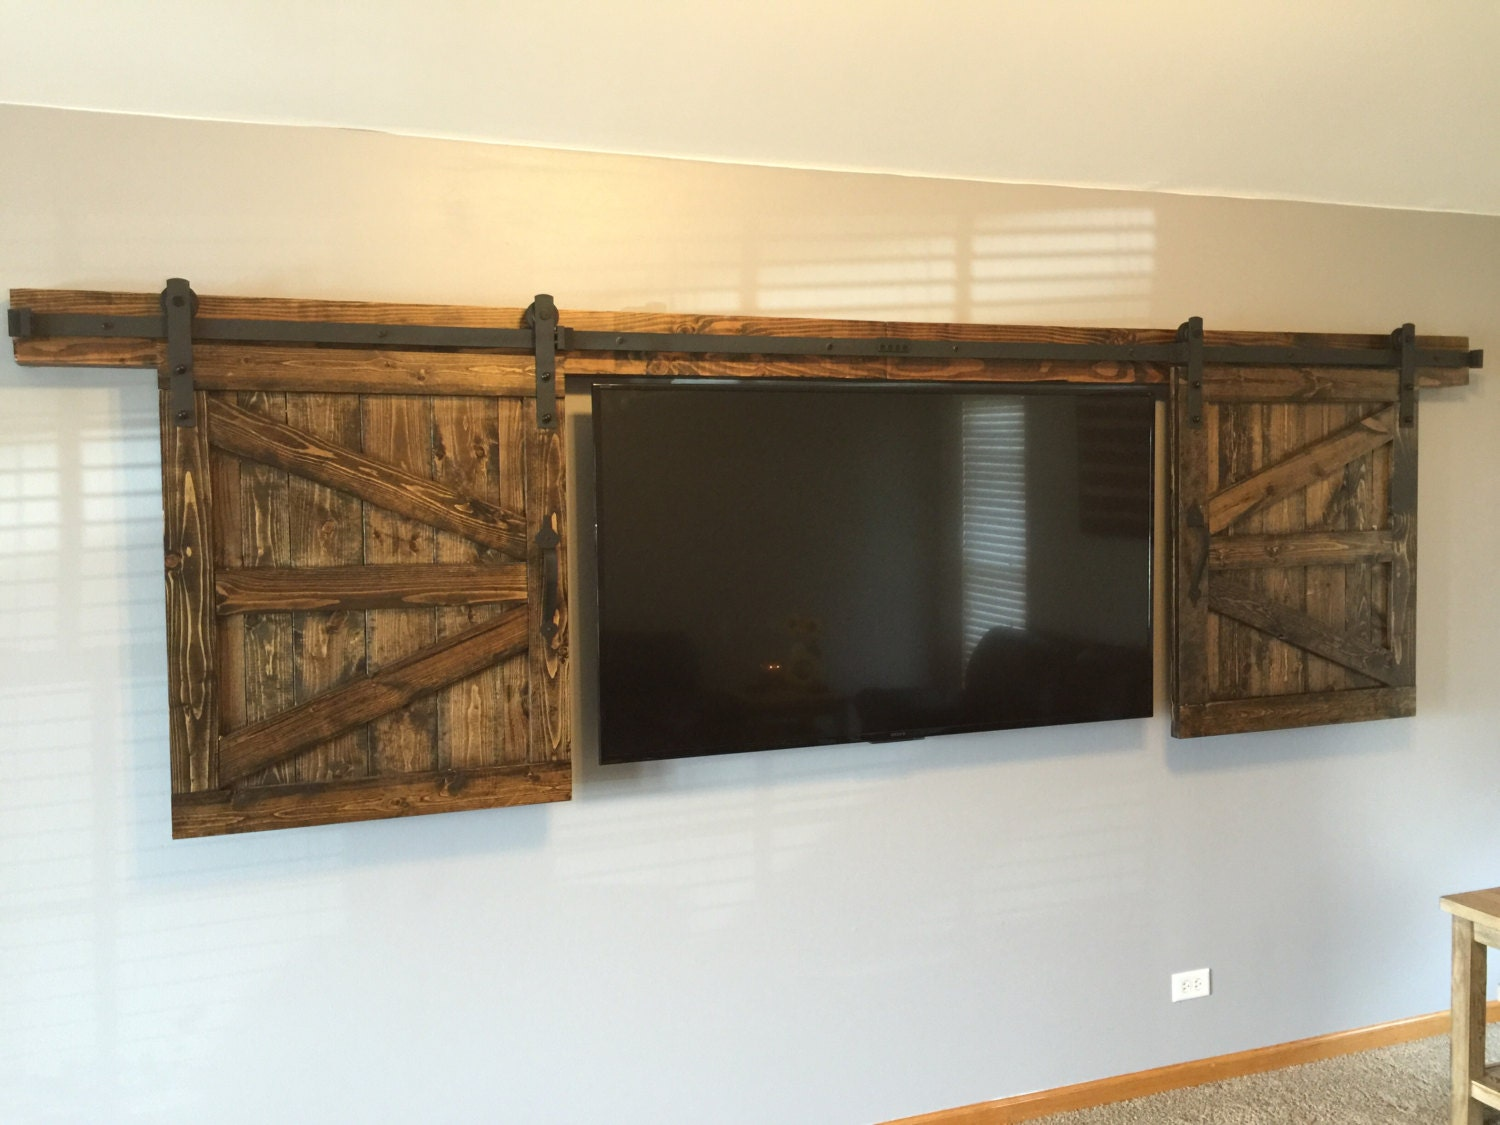 TV Hide Barn Door Set - Rustic TV Barn Door - Sliding Window - Interior - Sliding TV Cover - Barn Door Cabinet - Farmhouse Door & TV Hide Barn Door Set - Rustic TV Barn Door - Sliding Window ...